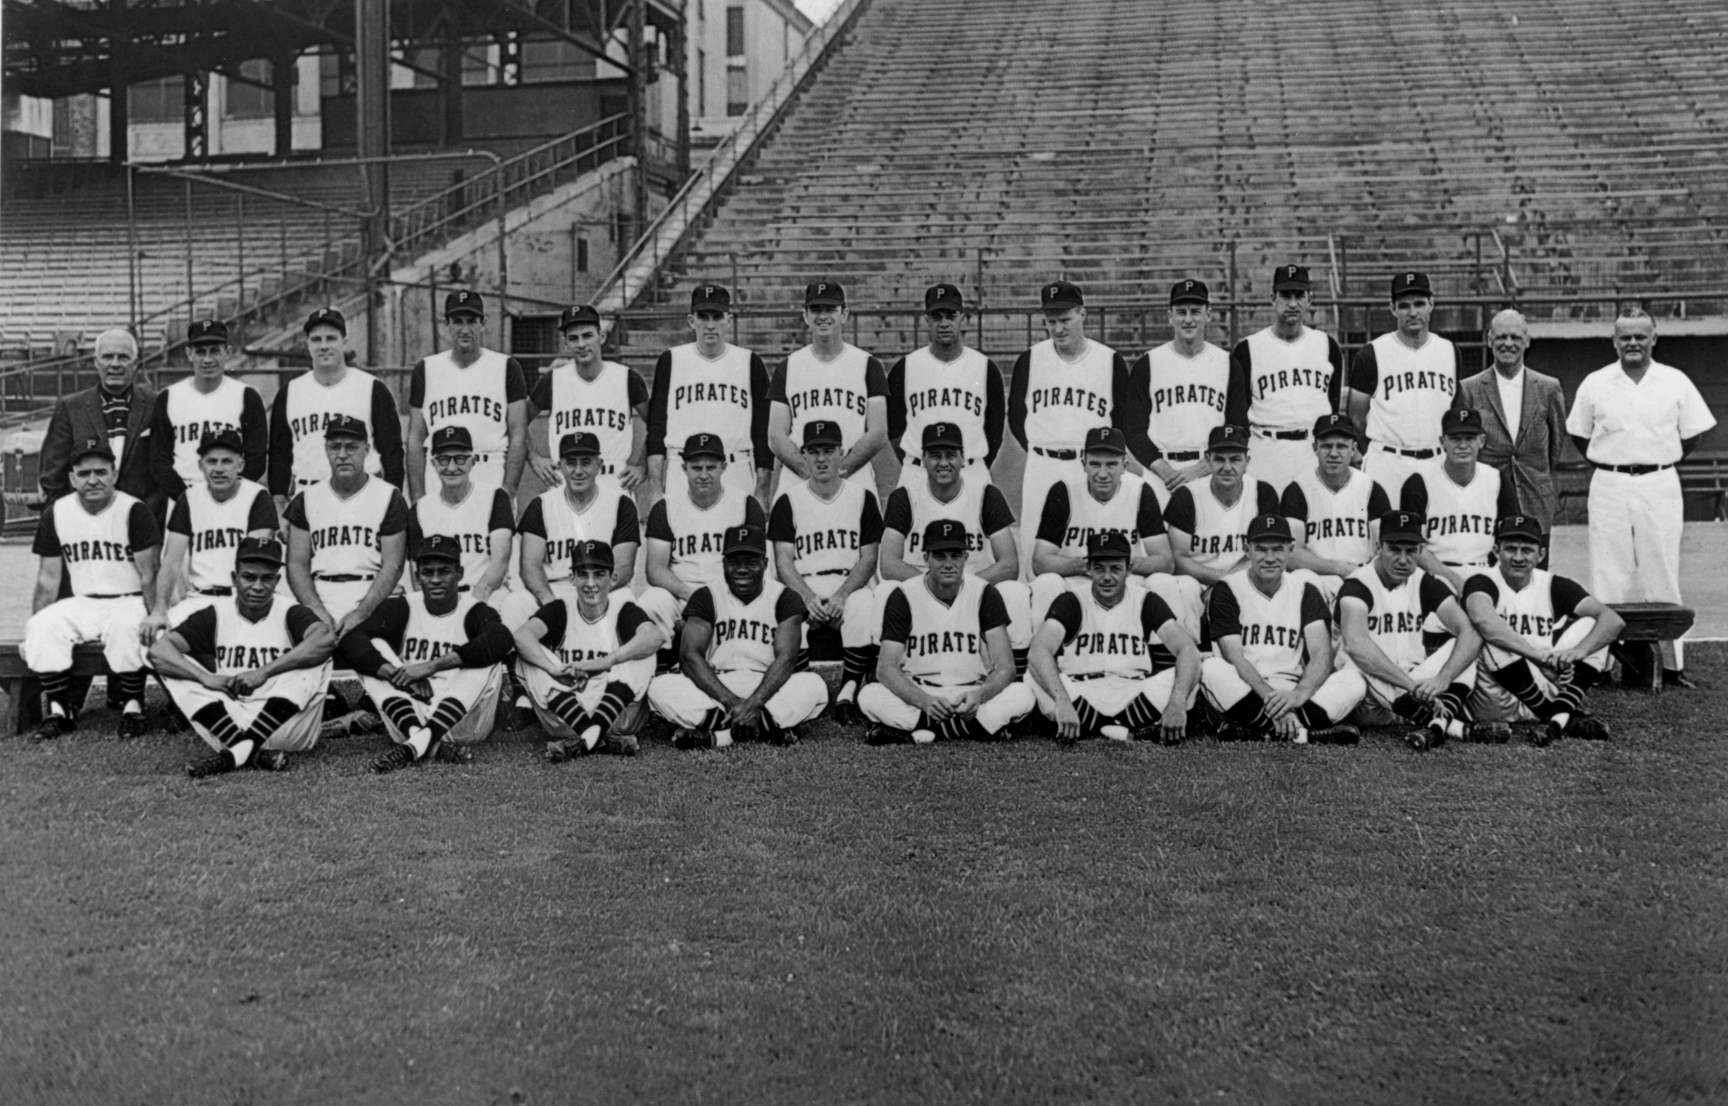 The 1960 World Series champion Pittsburgh Pirates pose for a photo.